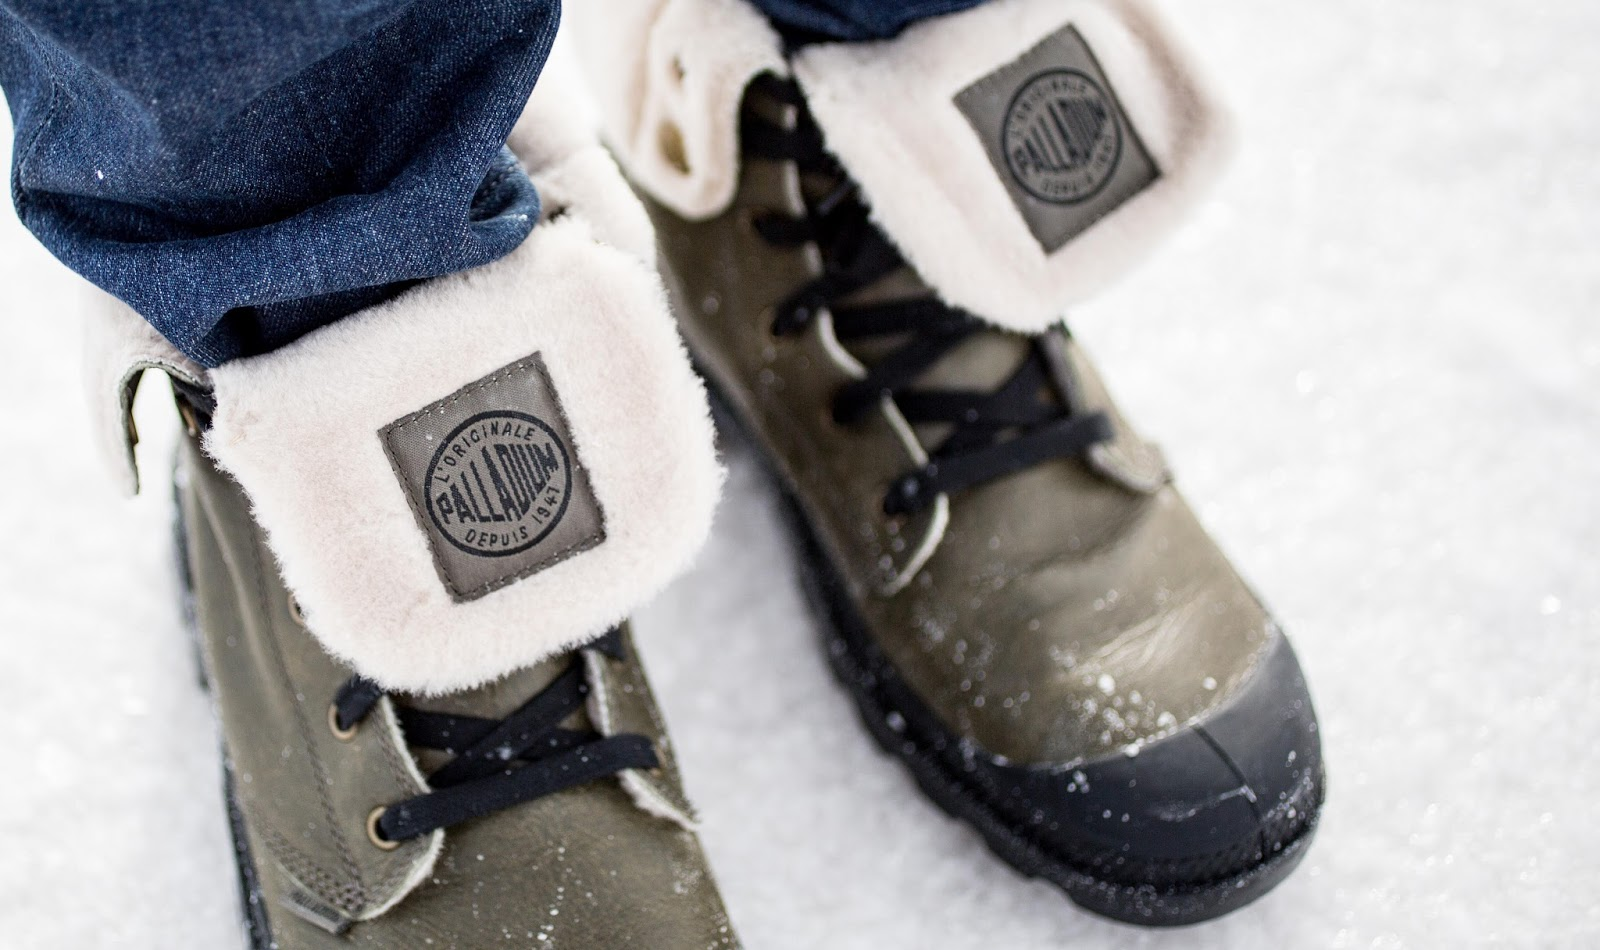 Palladium Boots Wool Lined Baggy Lt